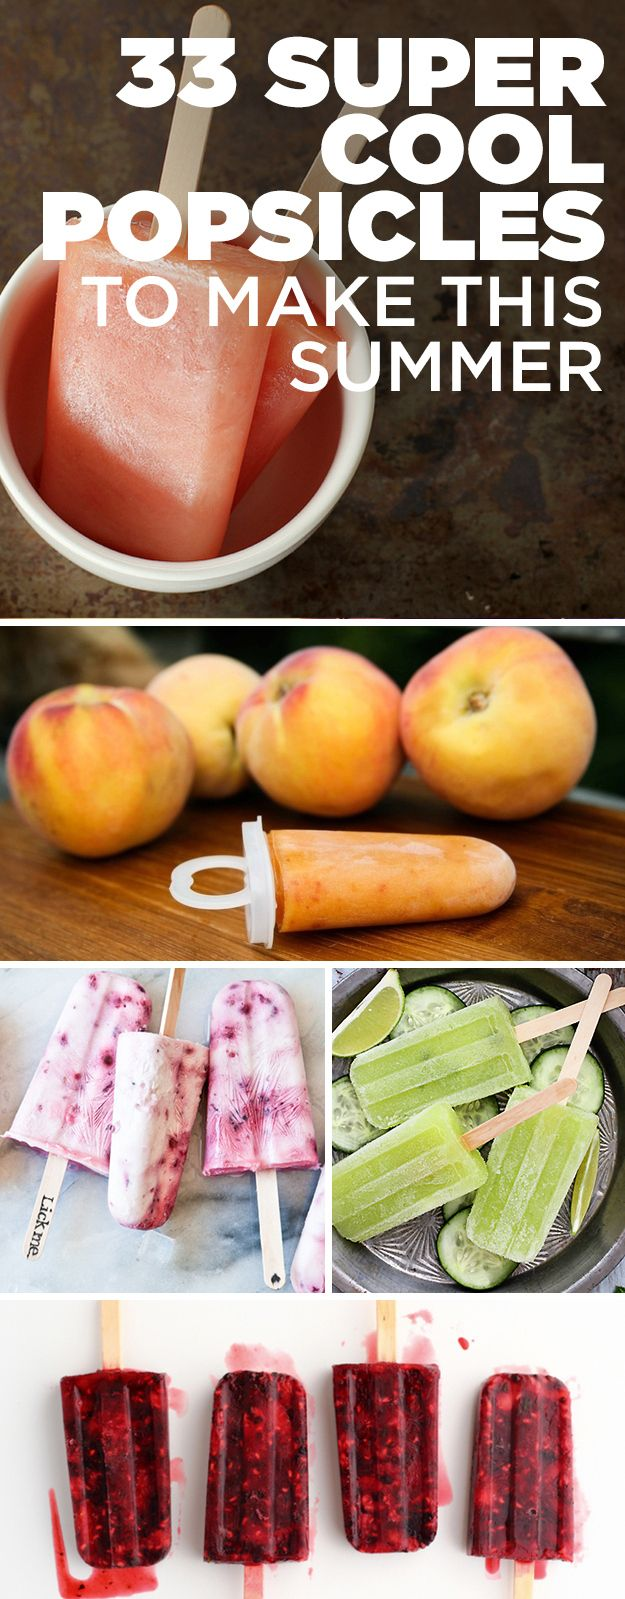 DIY 33 Super-Cool Popsicles To Make This Summer ~~  Rule of thumb for warm weather: Don't eat anything unless it's frozen and on a stick.